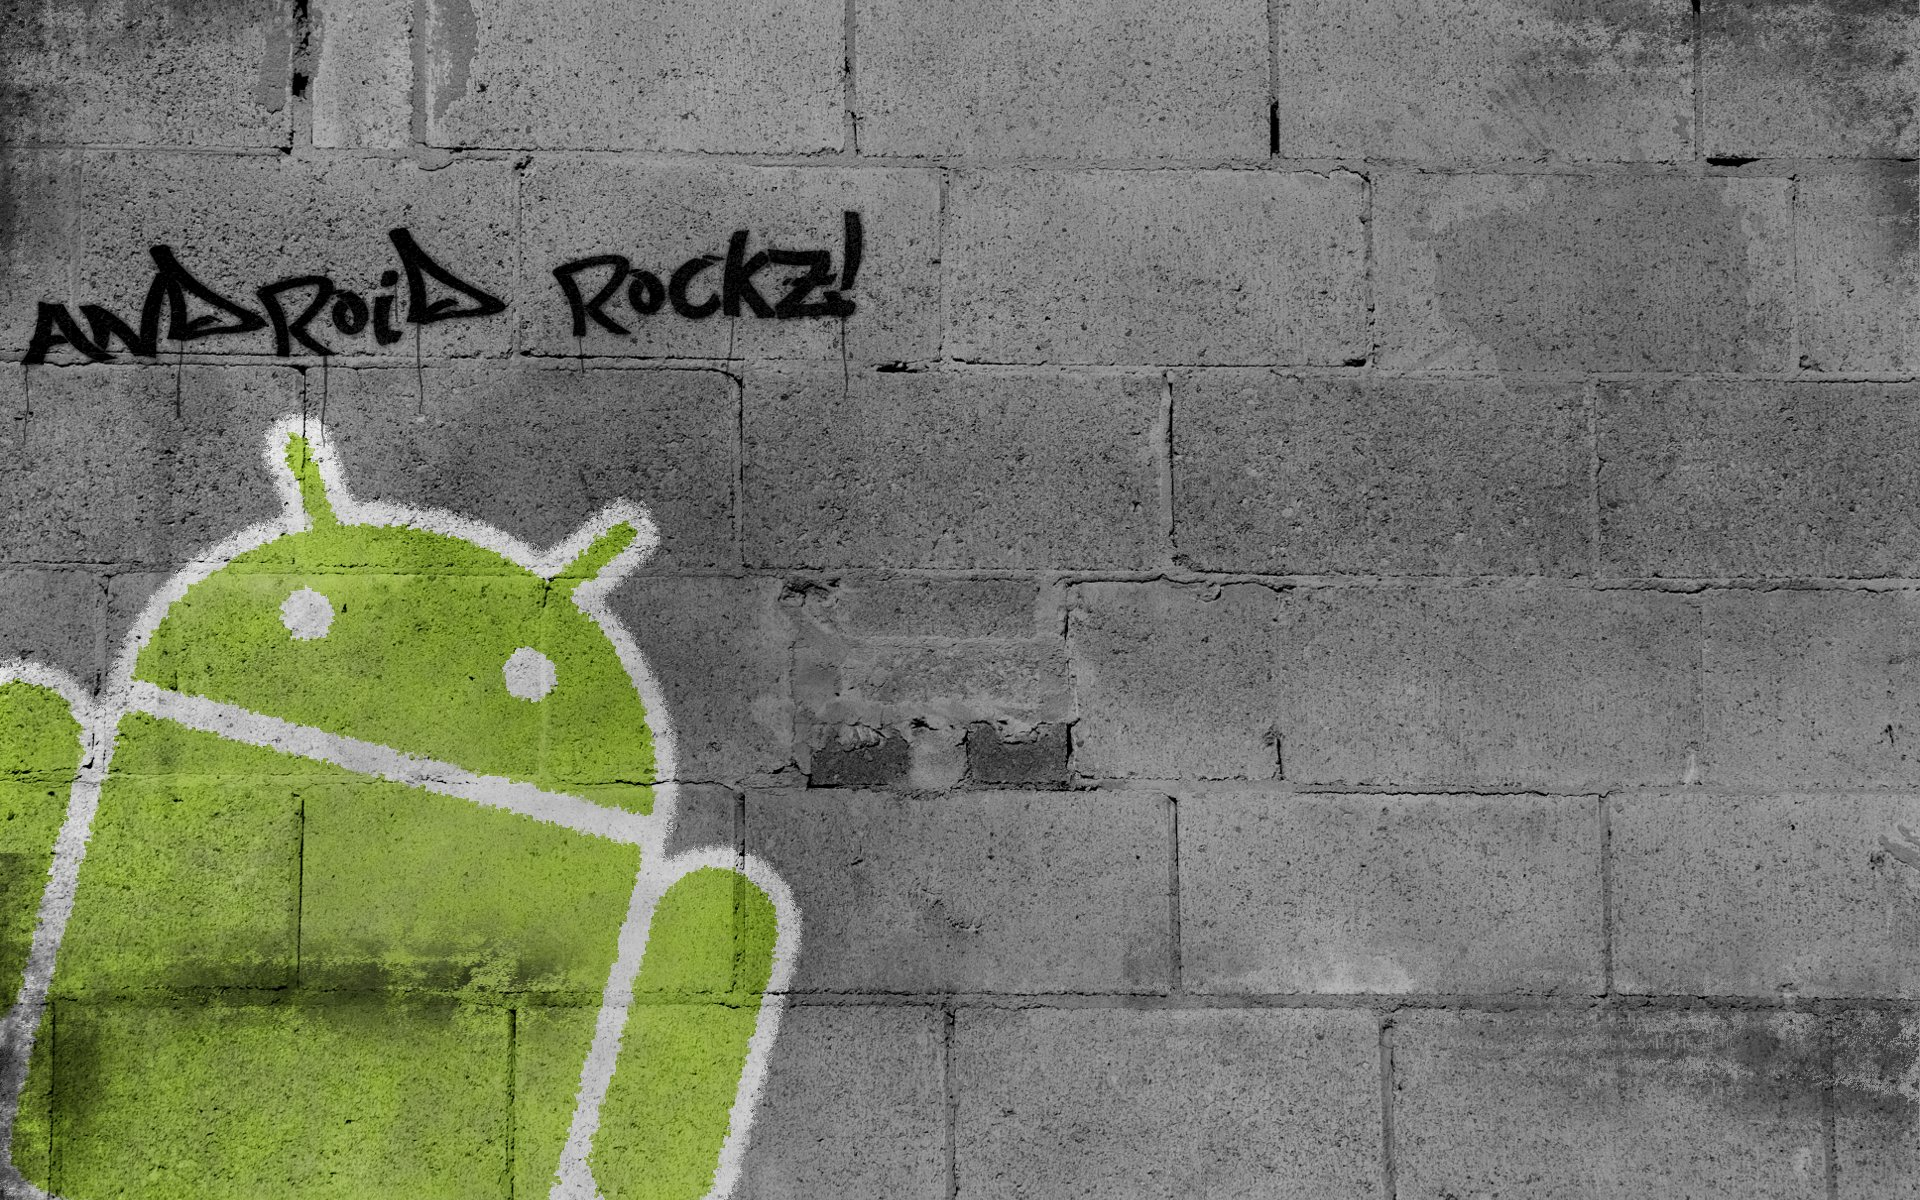 Android Backgrounds: Android Wallpaper: 40+ Free Designs For You To Download